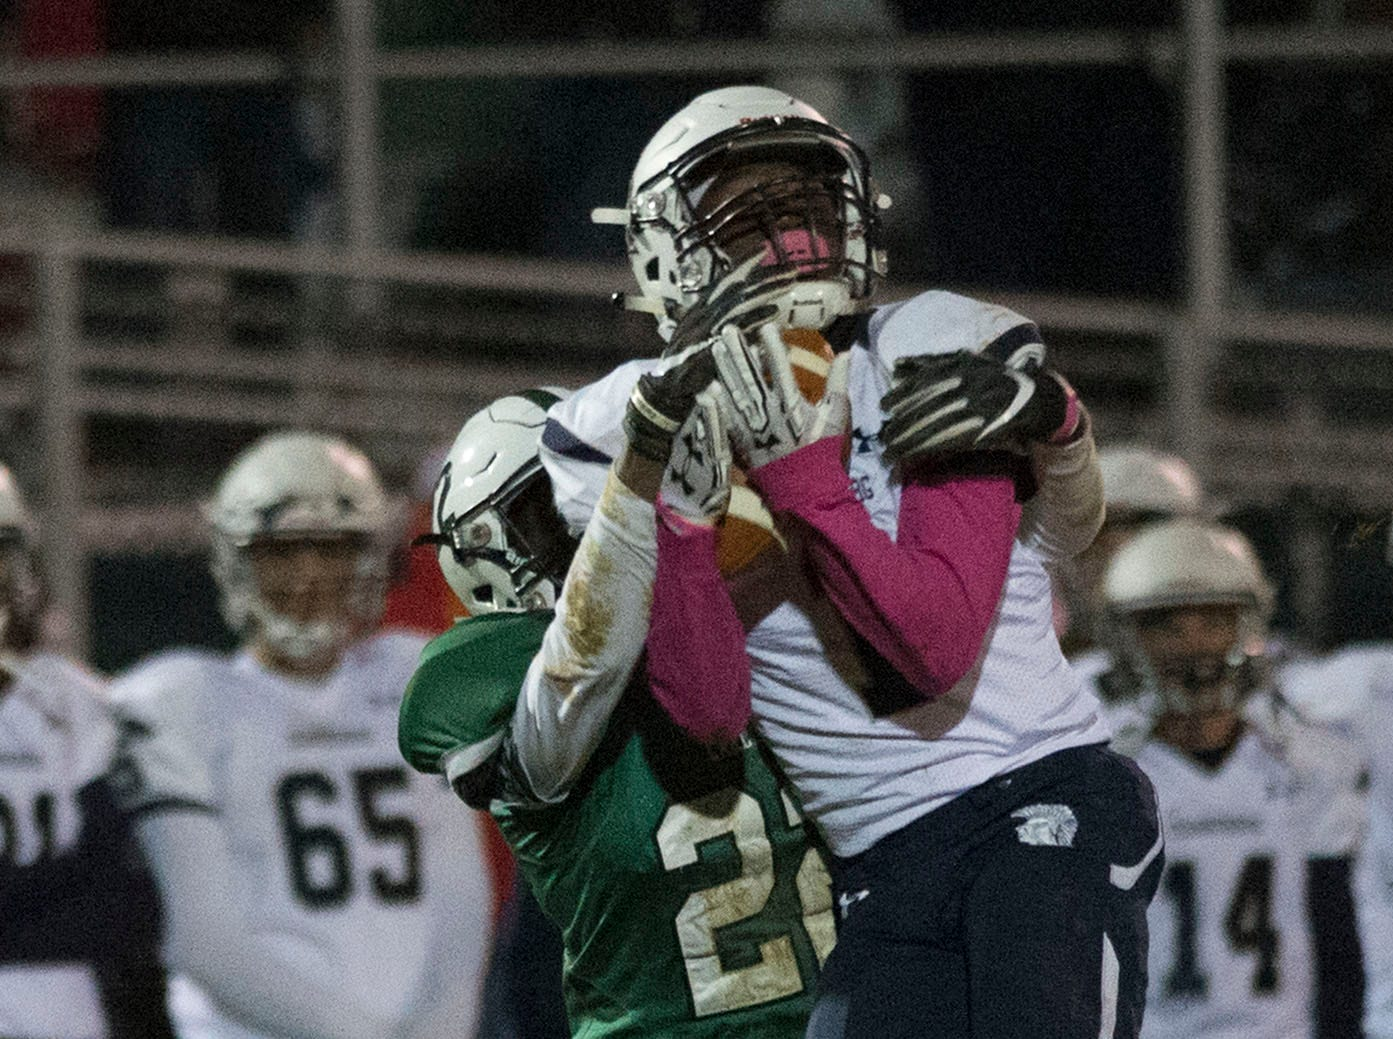 Kevin Lee Jr. (1) of Chambersburg makes one of several critical catches over Carlisle's Jamari Brown (22) late in the game during the 26-20 victory over on Friday, October 26, 2018.